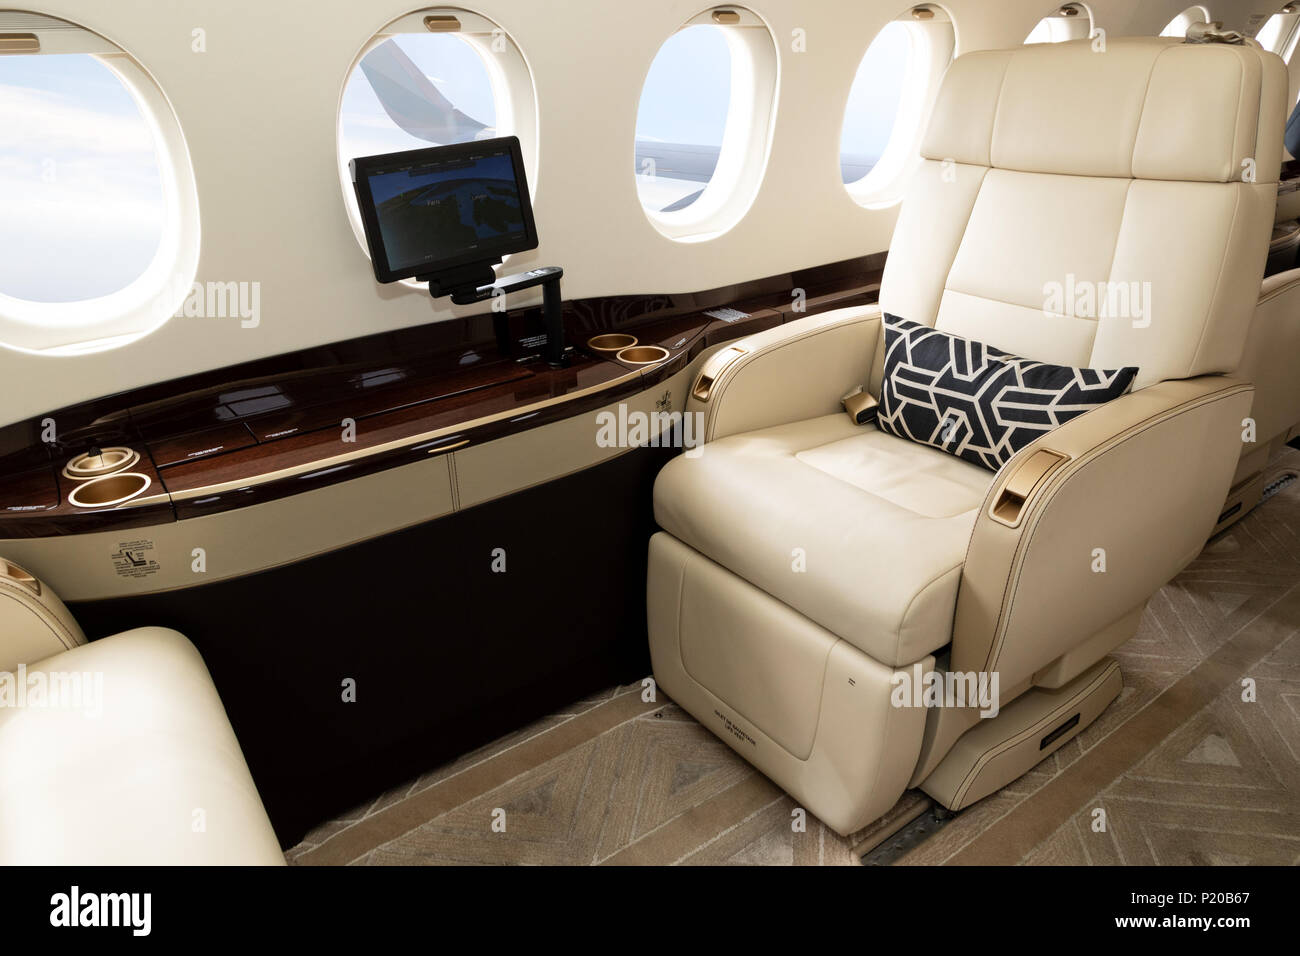 Comfortible cabin chair in a modern business jet during flight. - Stock Image